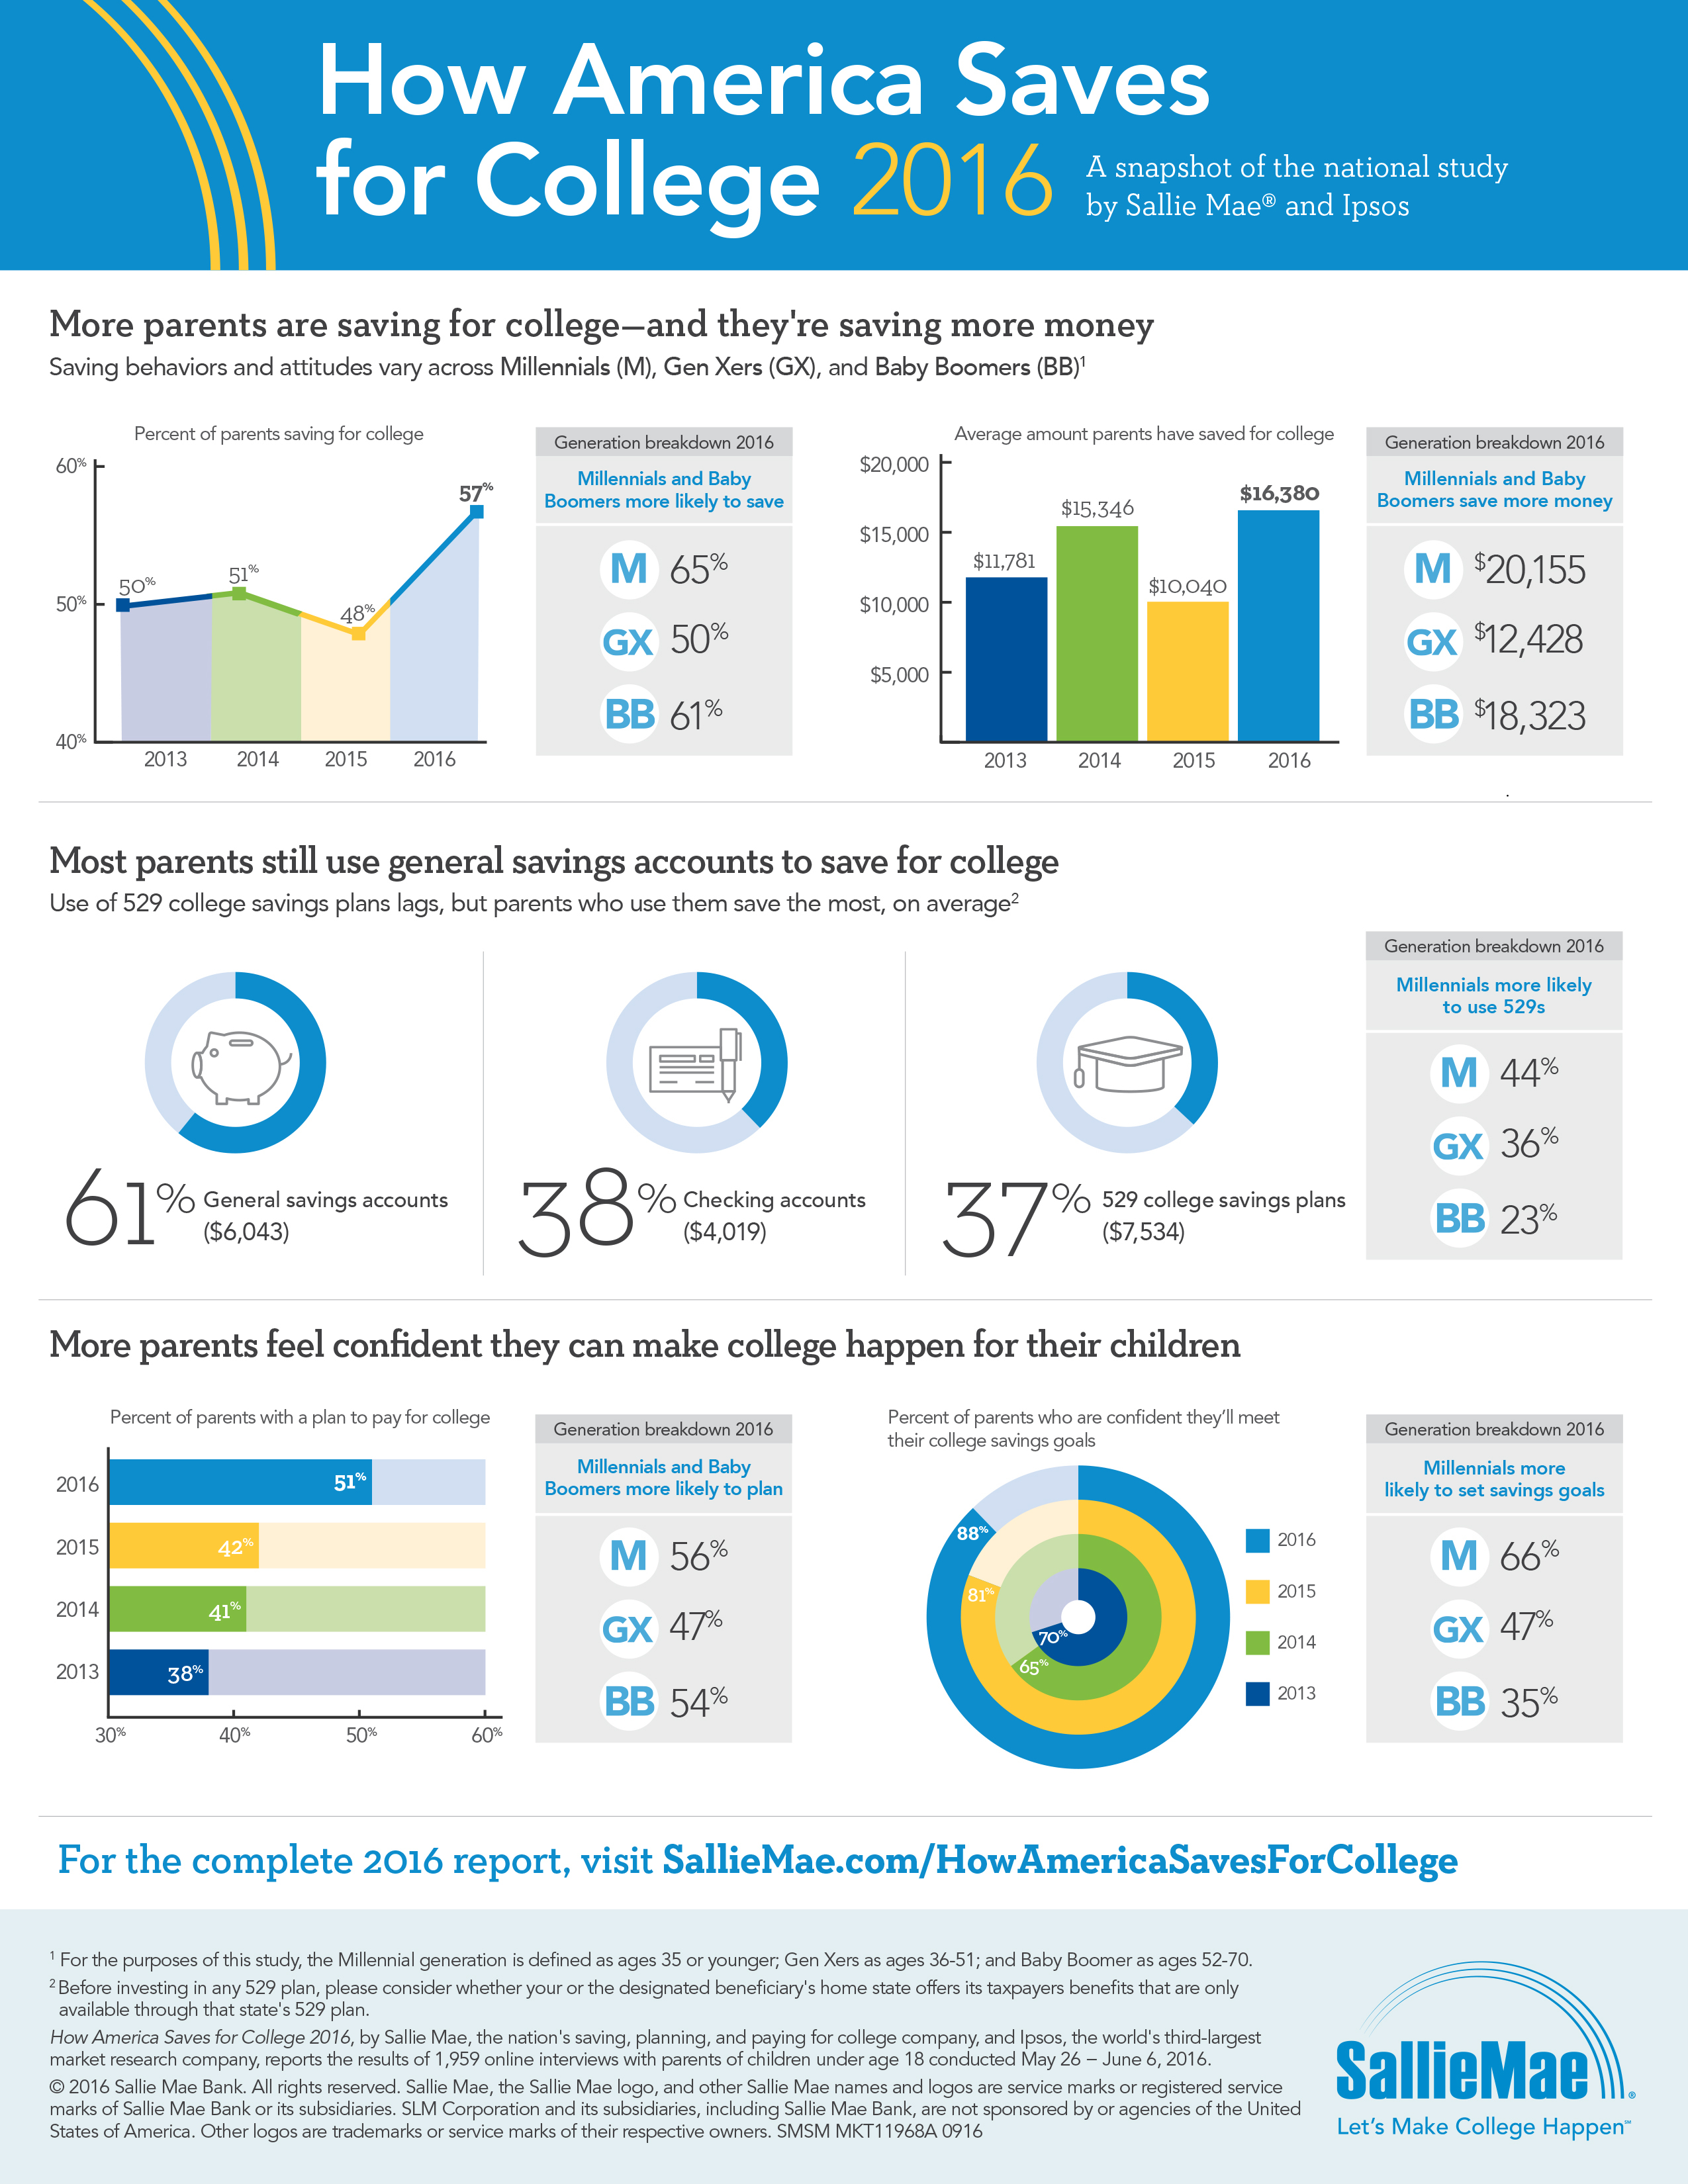 Sallie Mae's How America Saves for College 2016 Infographic (Graphic: Business Wire)